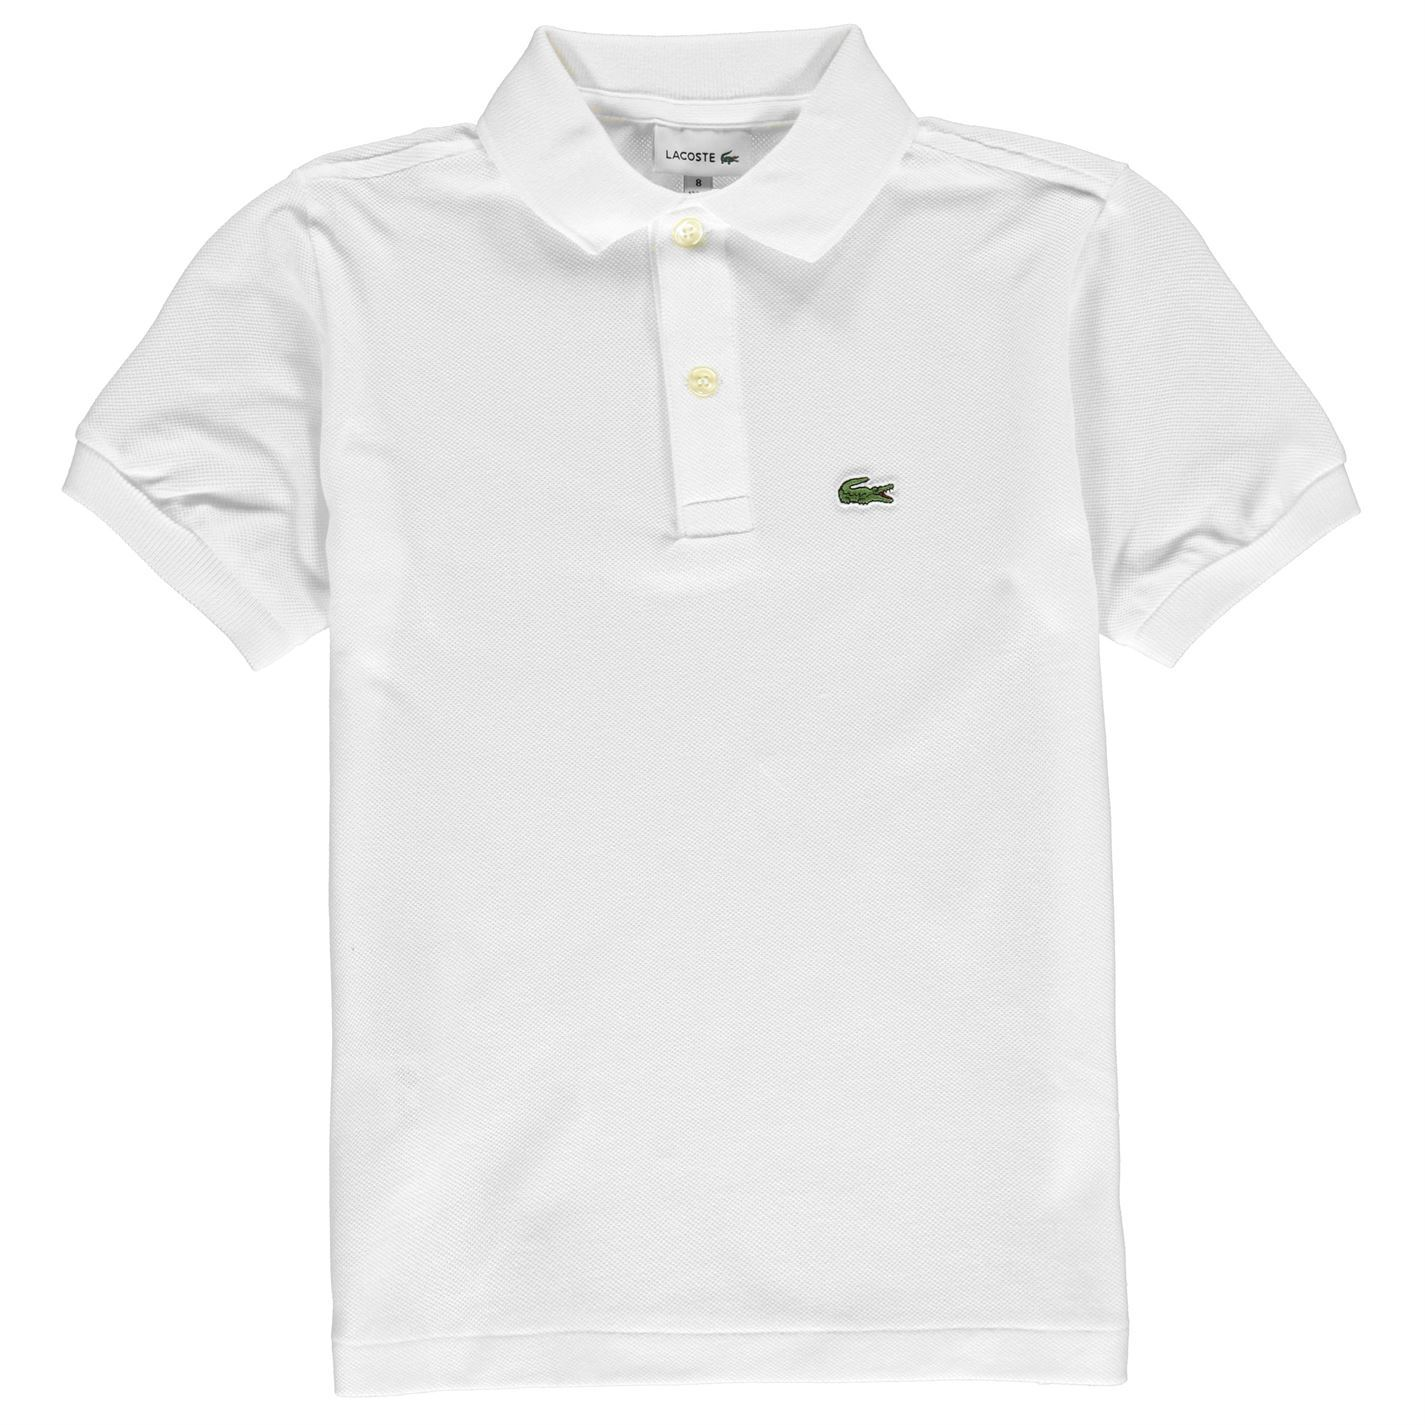 7c50999687320 Details about Kids Lacoste Basic Polo Shirt Classic Fit Short Sleeve New